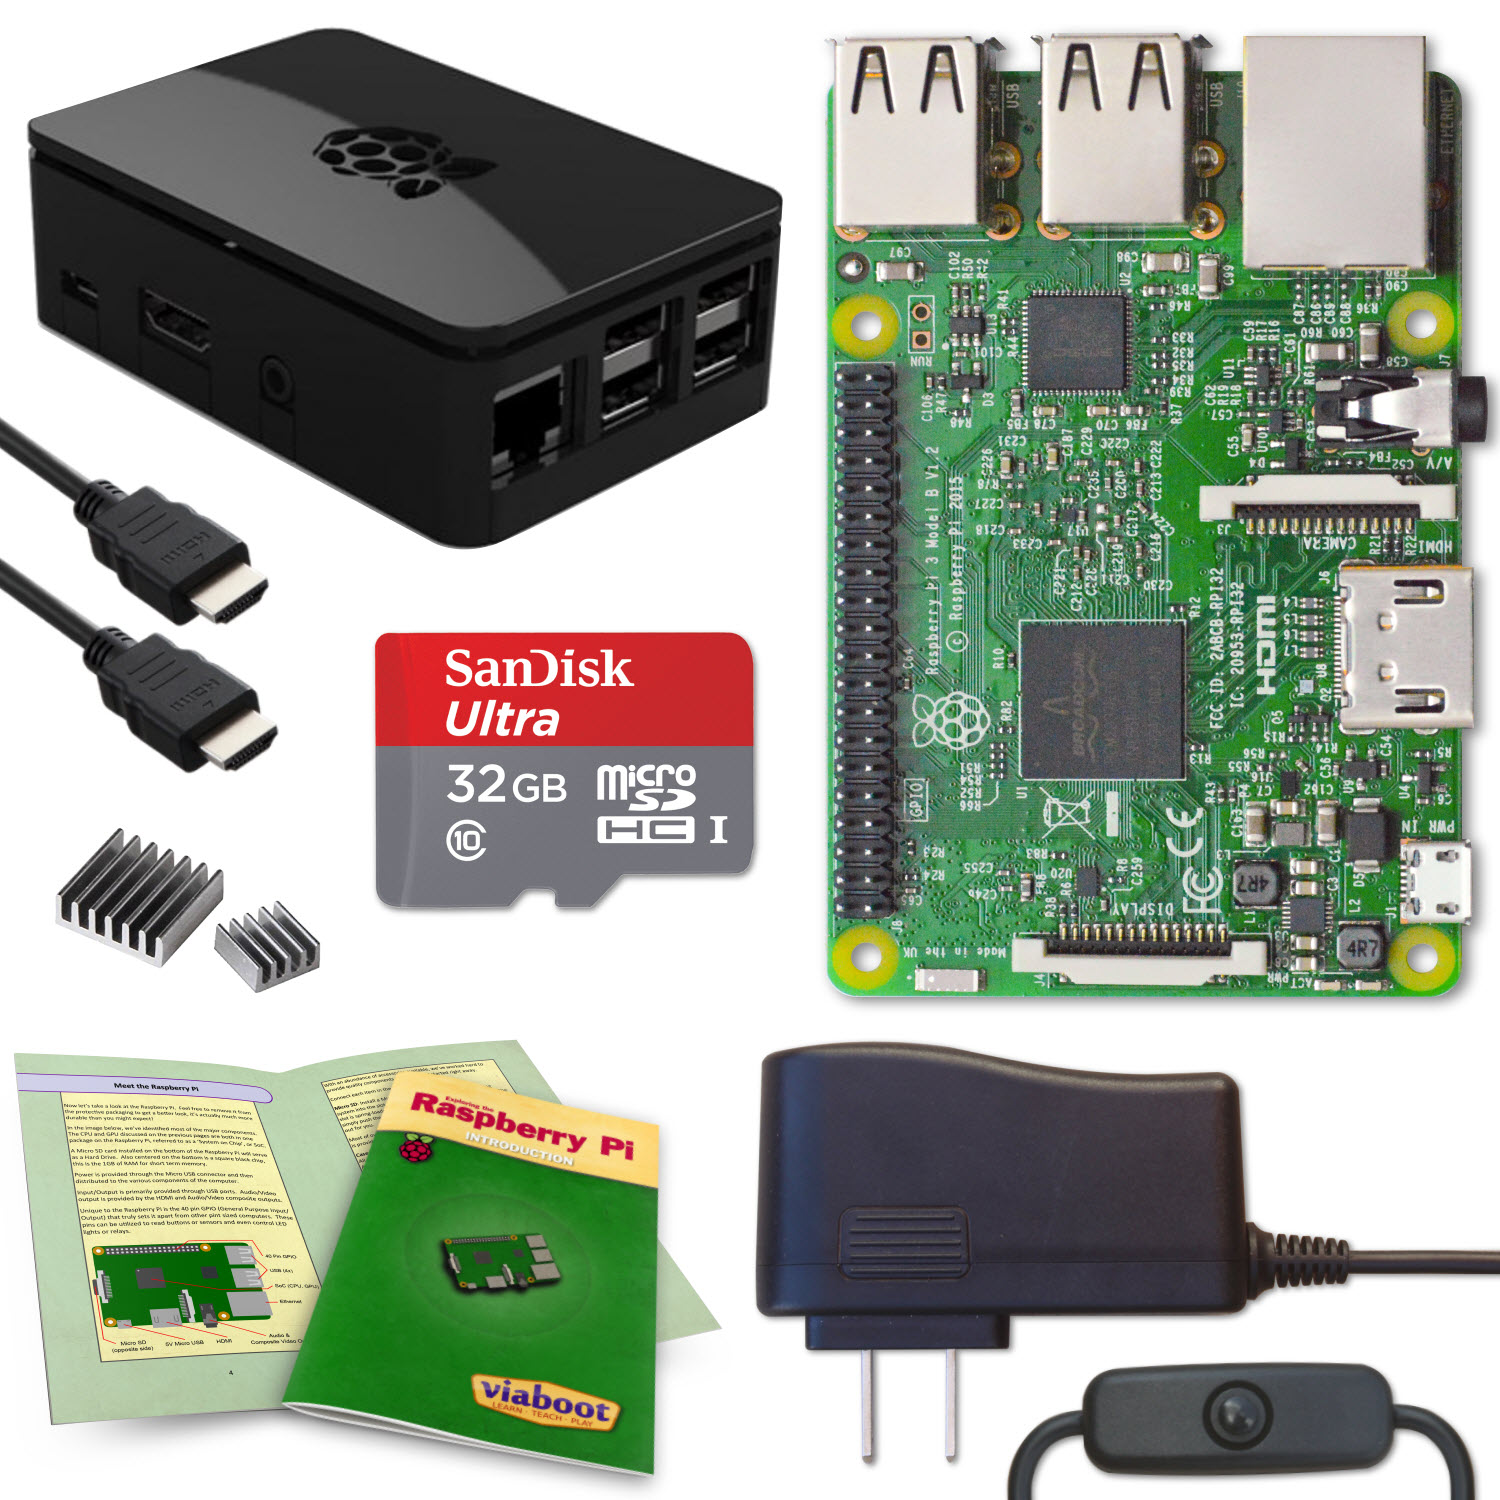 Viaboot Raspberry Pi 3 Complete Kit with Premium Black Case